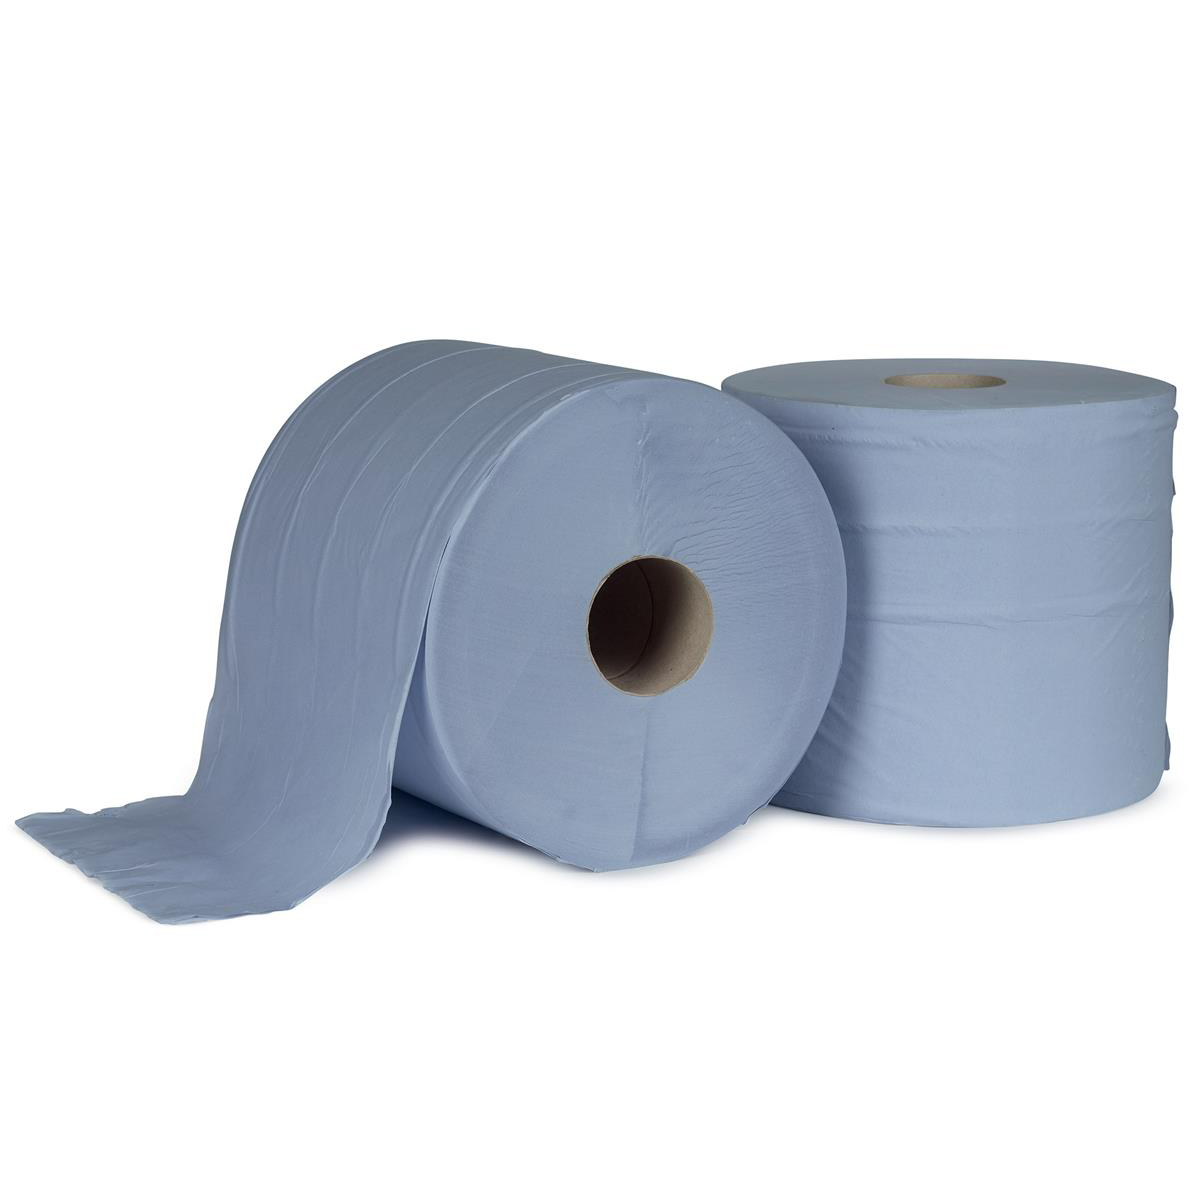 5 Star Facilities Giant Wiper Roll 2-ply Perforated Sheet 370x370mm 40gsm 1000 Sheets Blue Pack 2